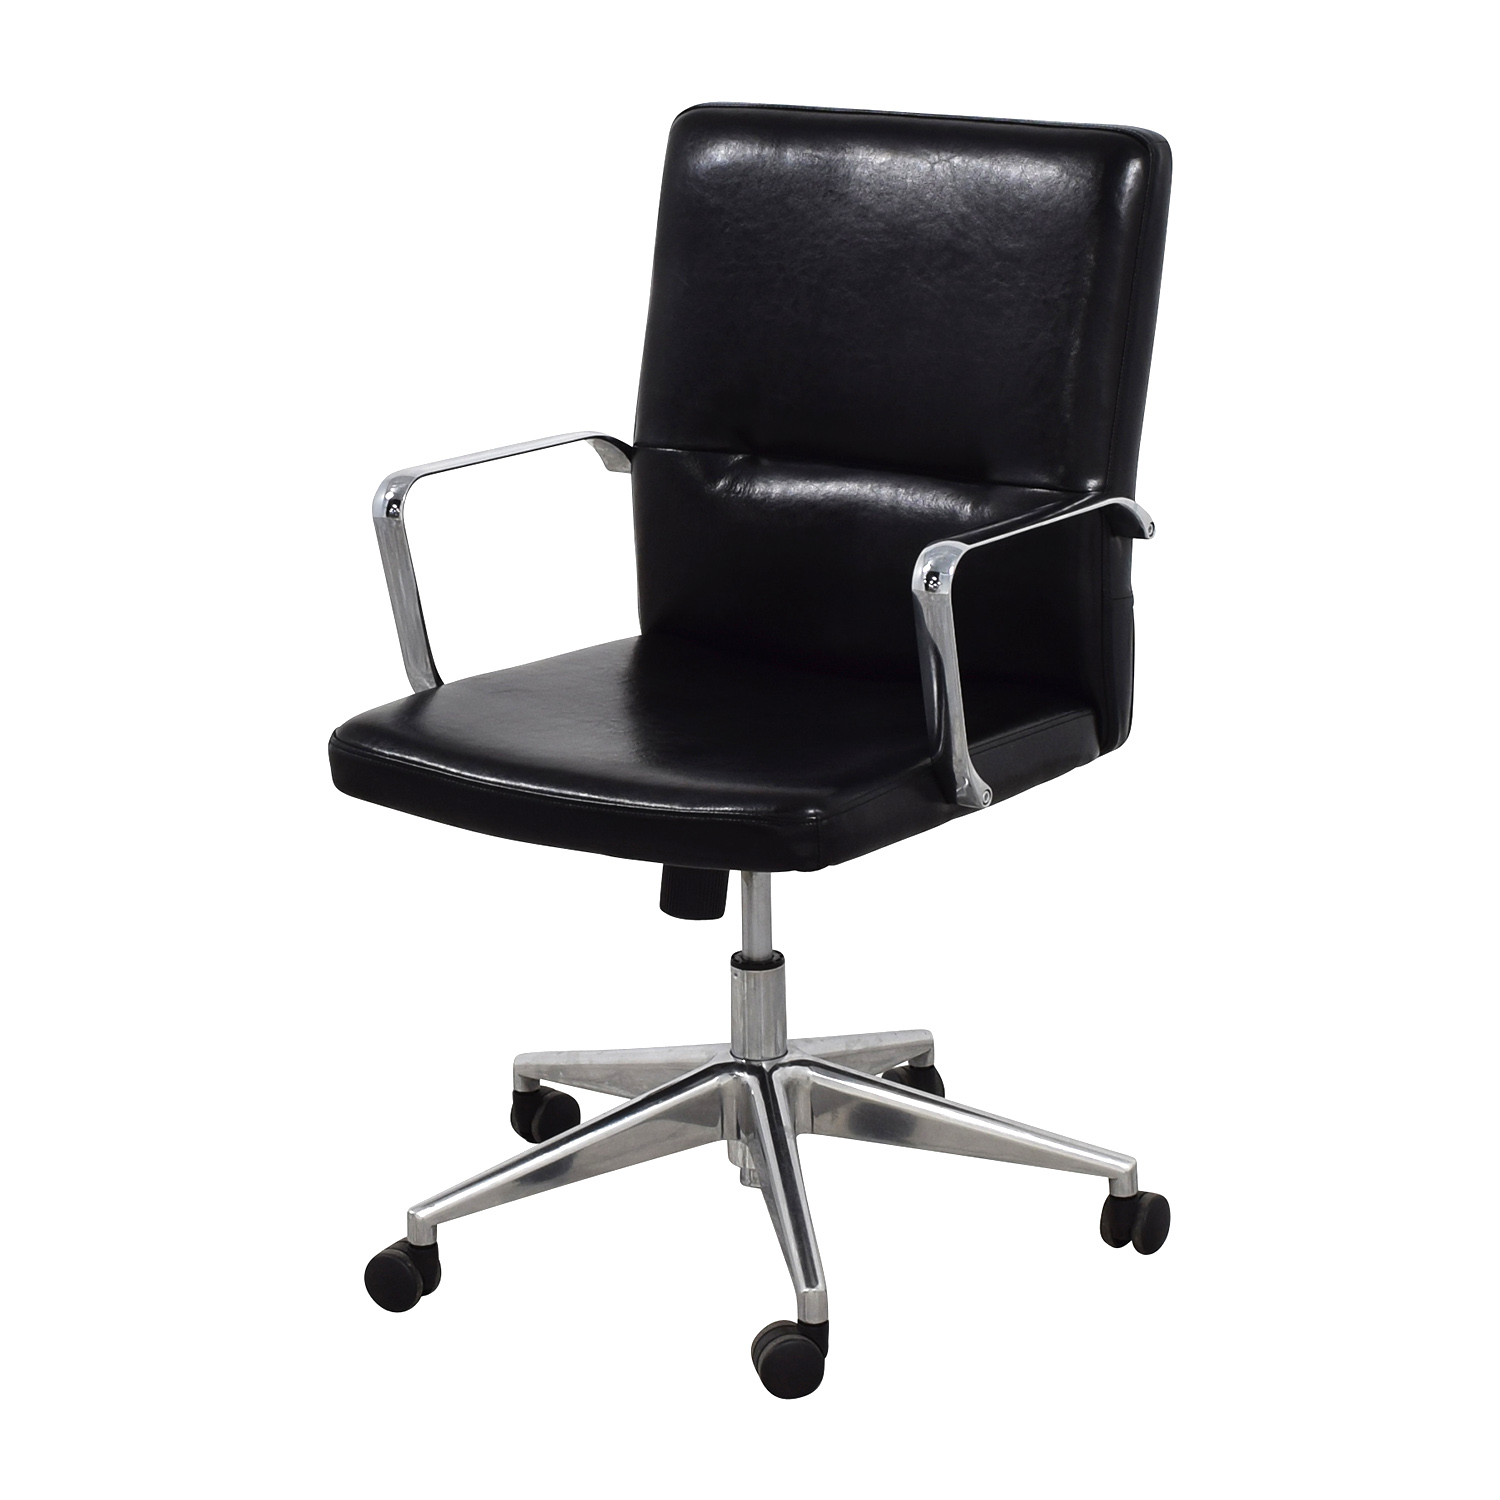 58 Off Sleek Black Office Chair With Chrome Armrest Chairs